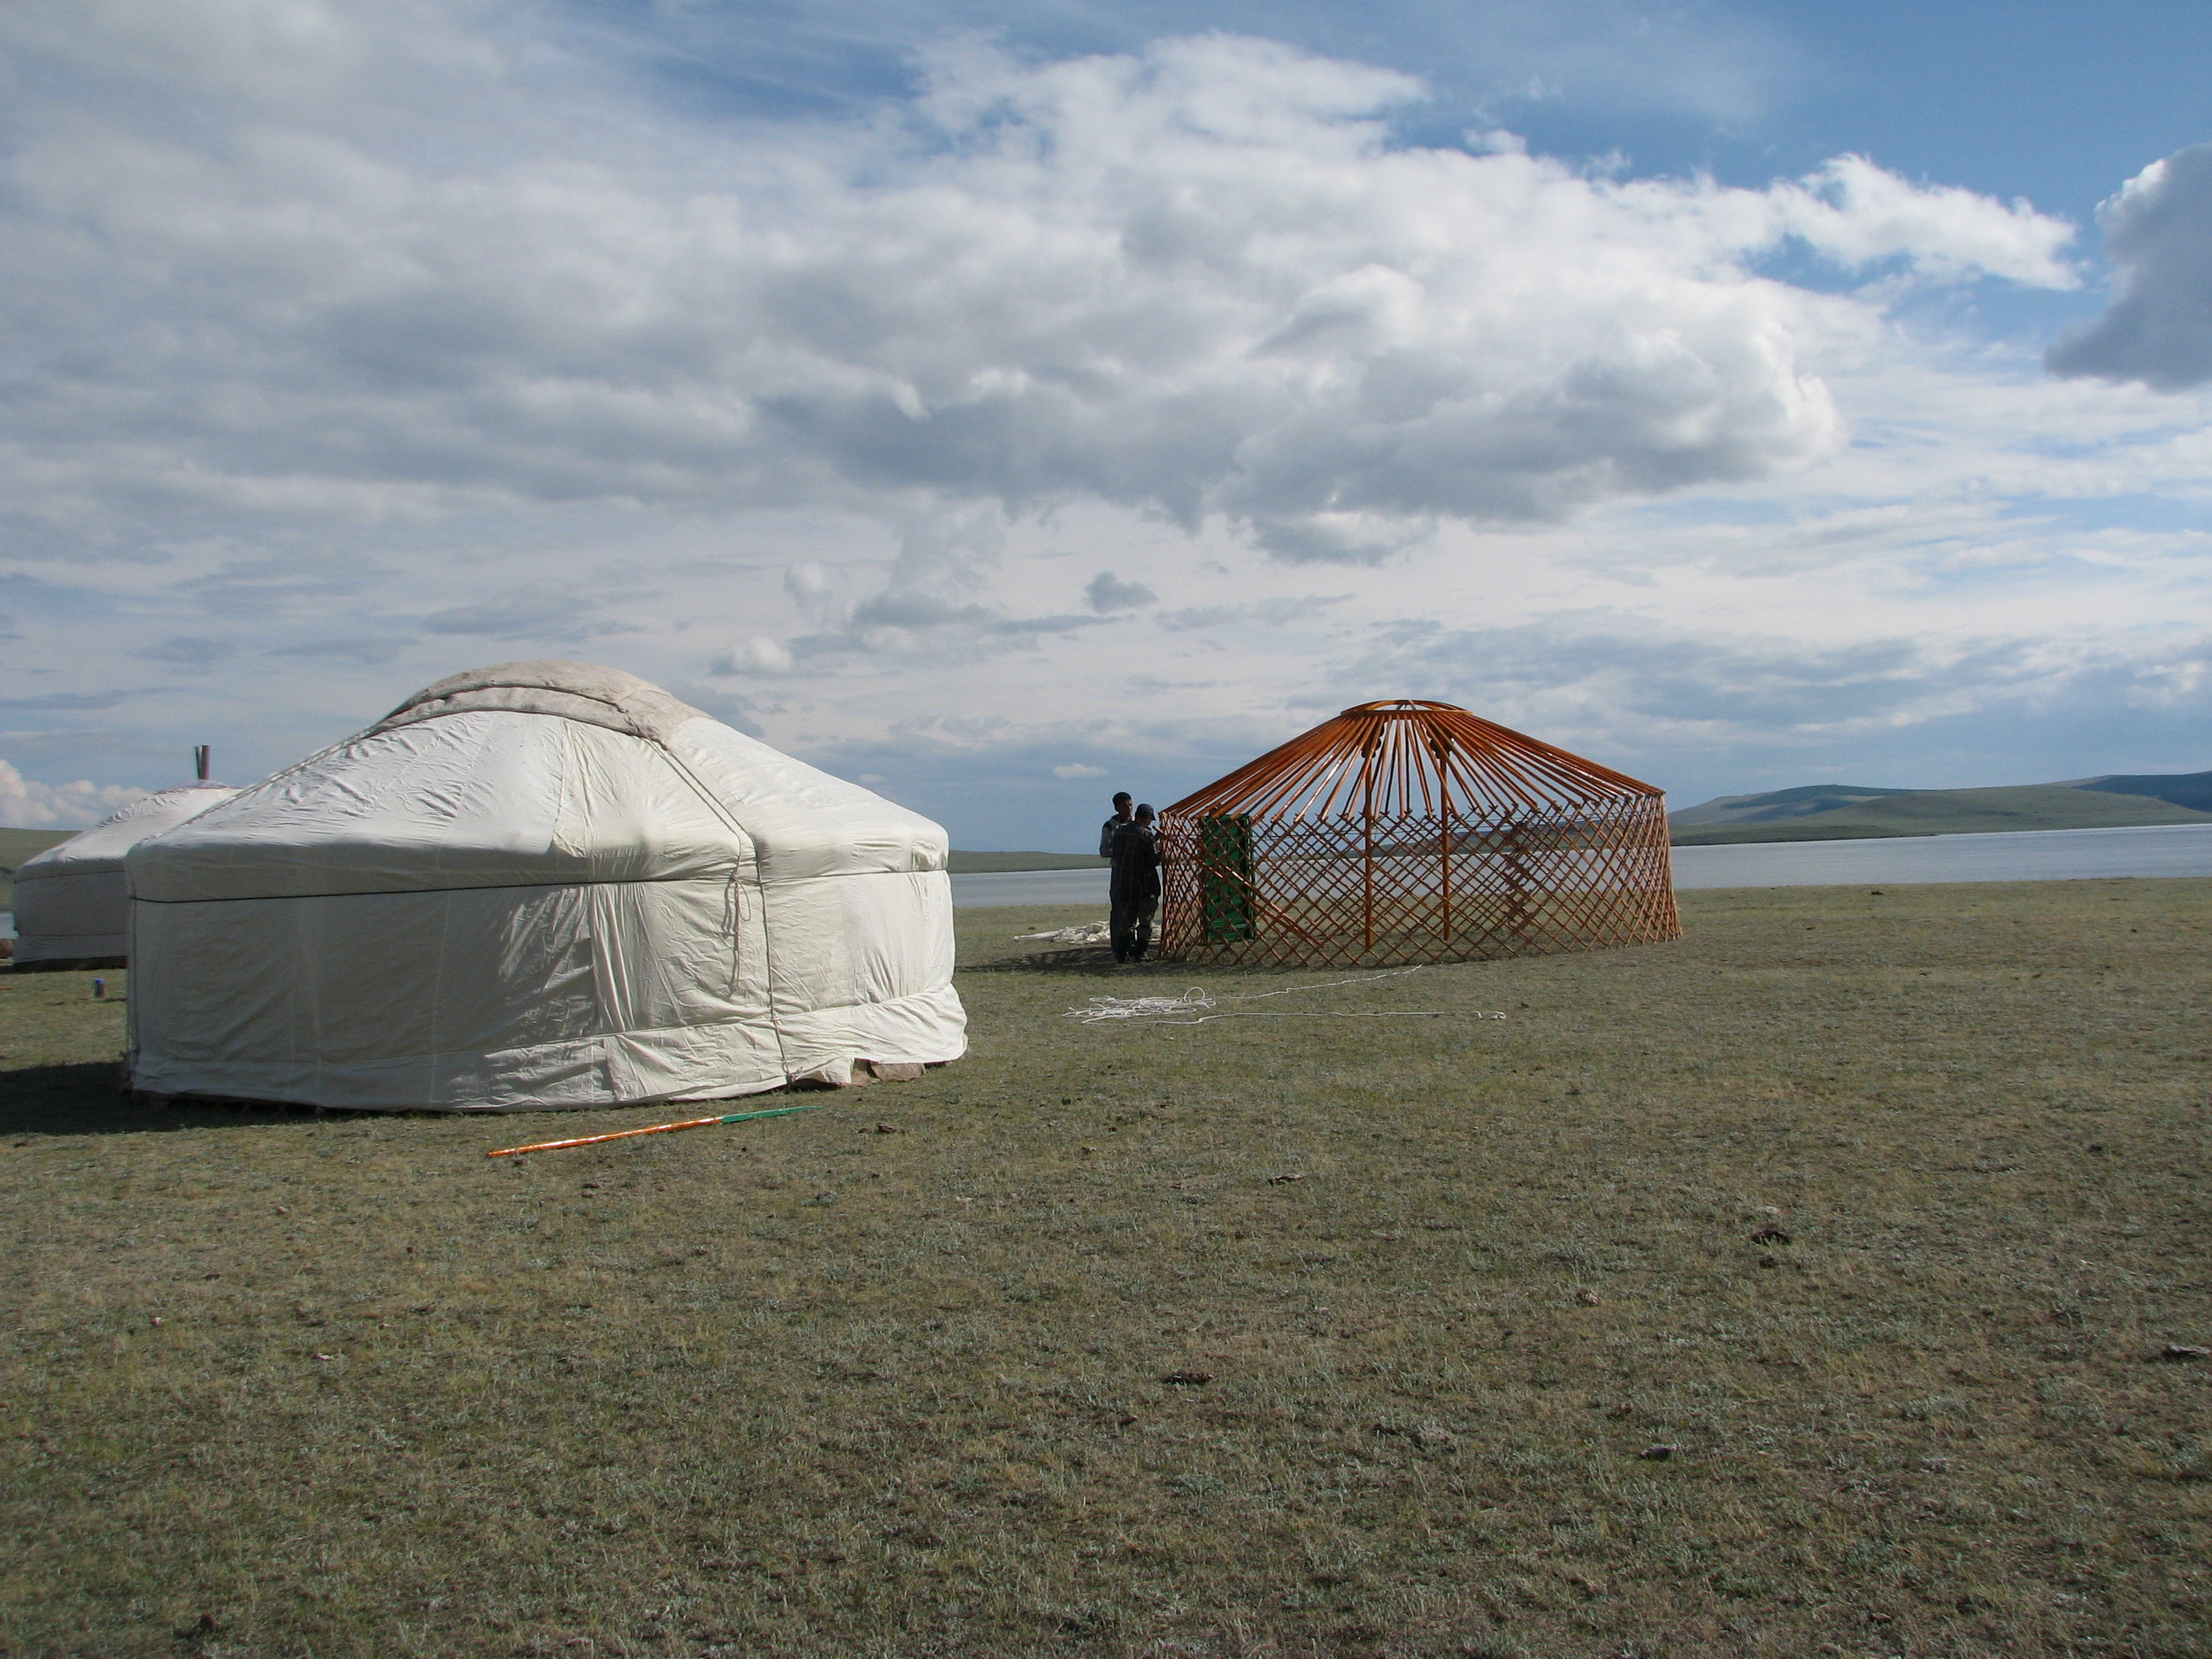 - Two Mongolian gers. In the foreground a recently set up ger, in the background, the 'skeleton' of a ger in the process of being assembled. A wooden inner structure is first covered in a thin cotton covering, then a thick felt layer, and finally a waterproof canvas layer.